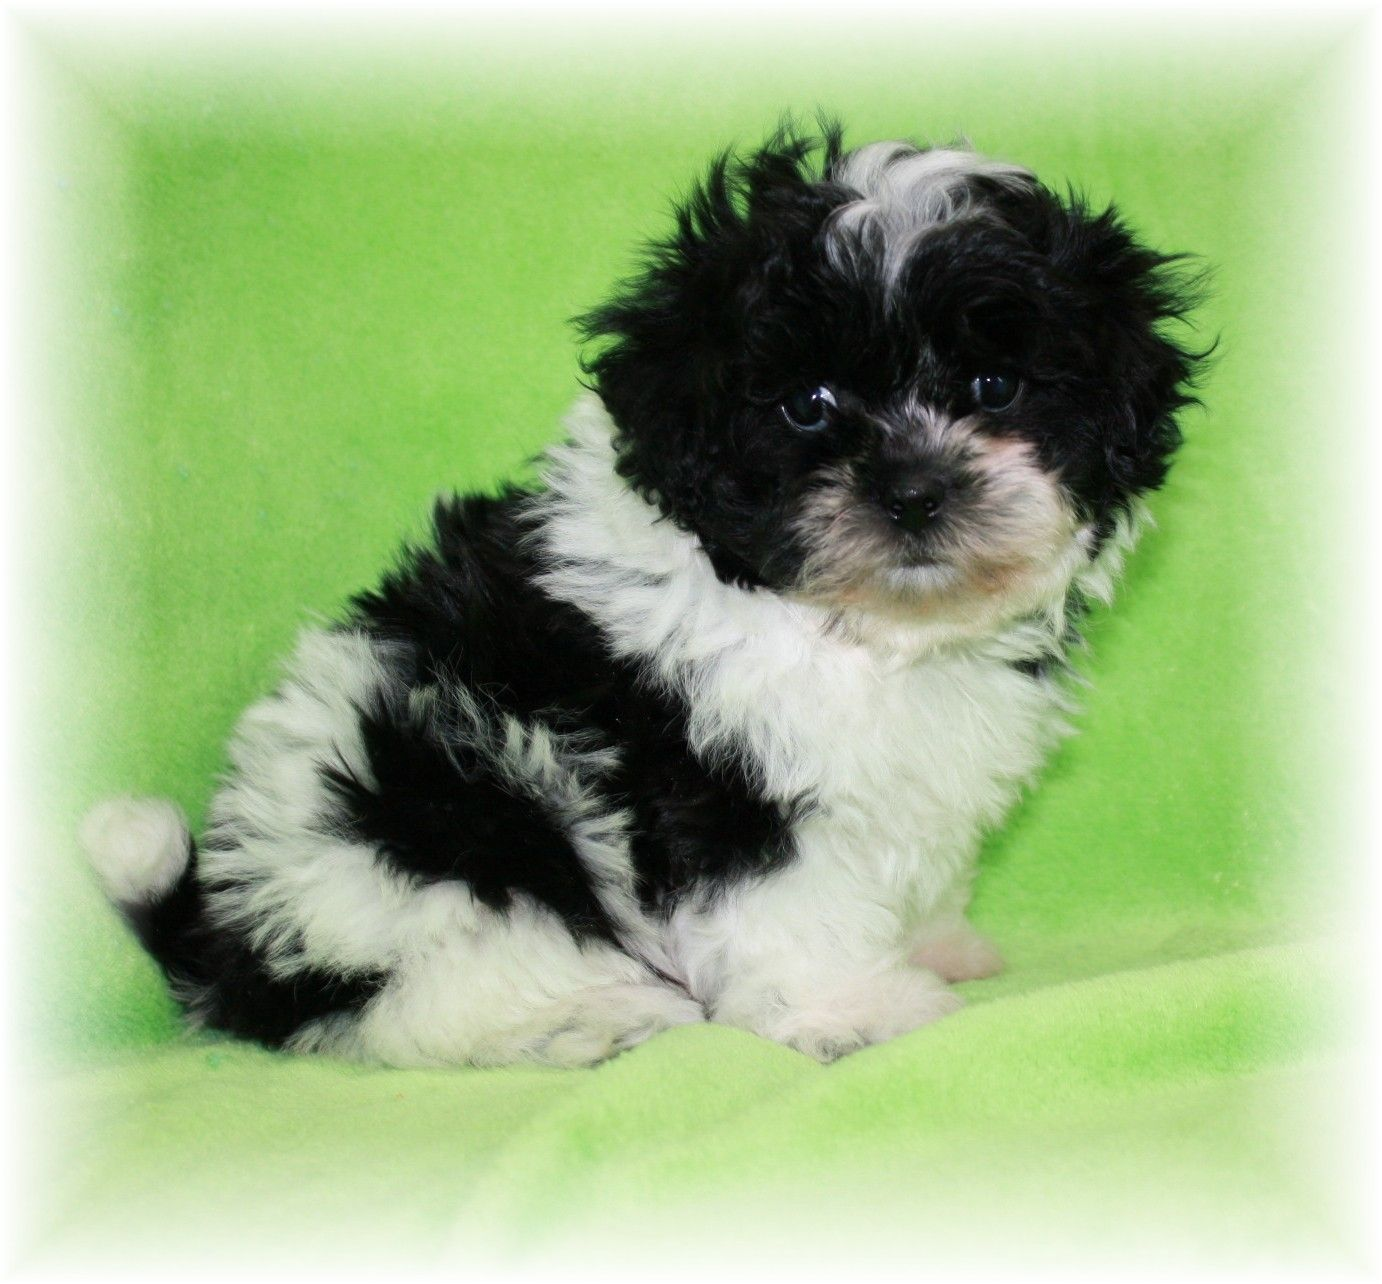 Oreo Is An Adorable Fluffy Teddy Bear Shih Tzu Poodle Mix See